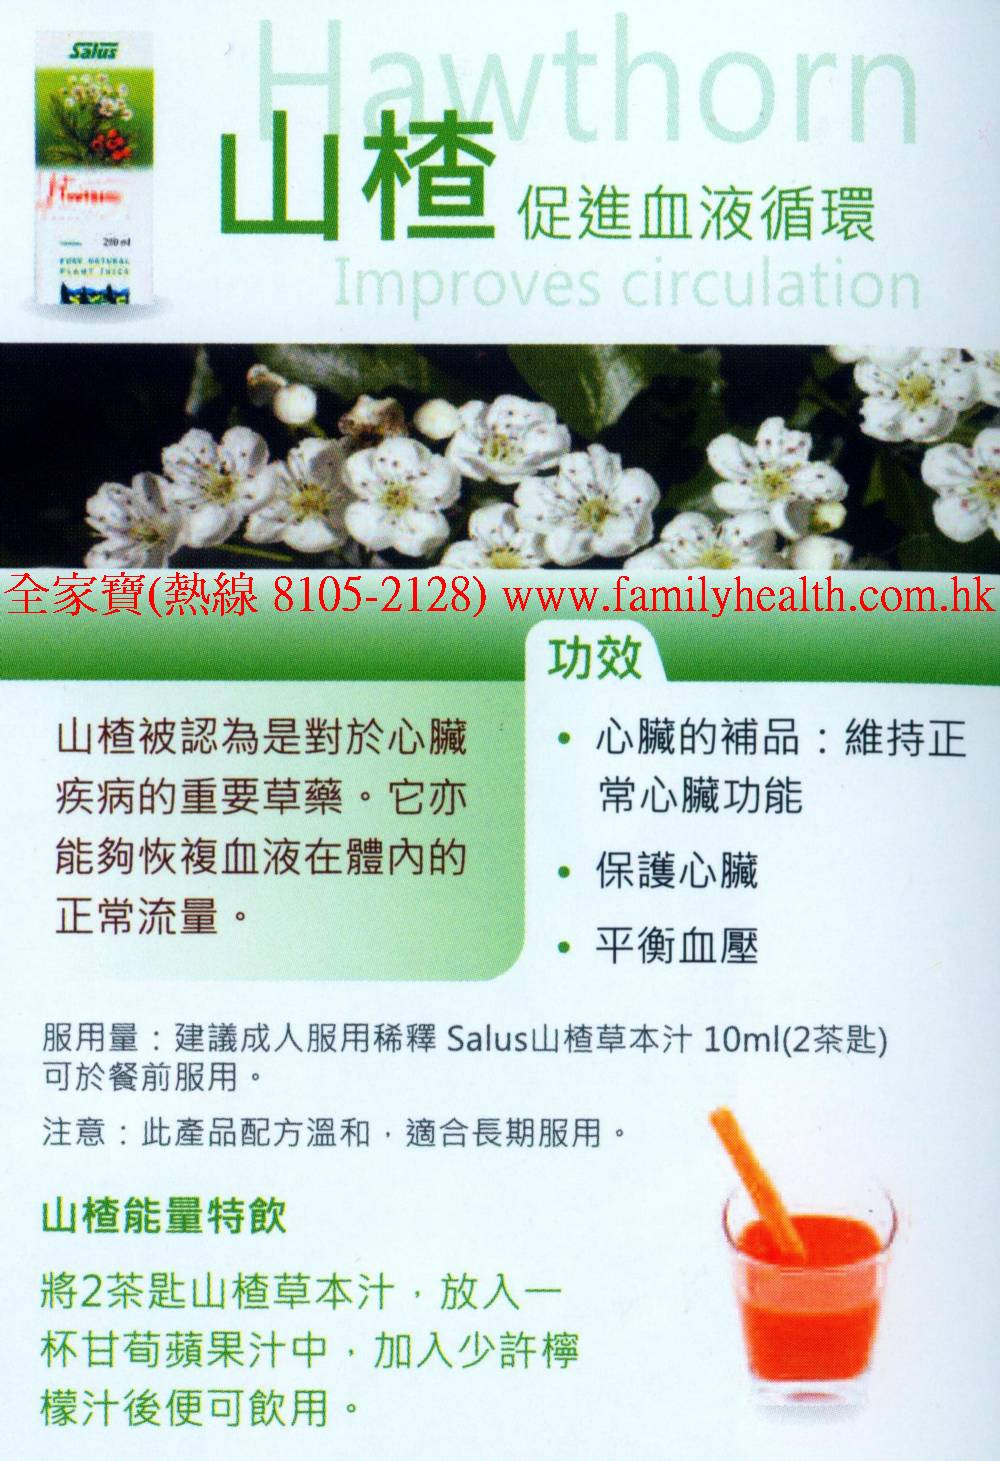 http://www.familyhealth.com.hk/files/full/201_1.jpg